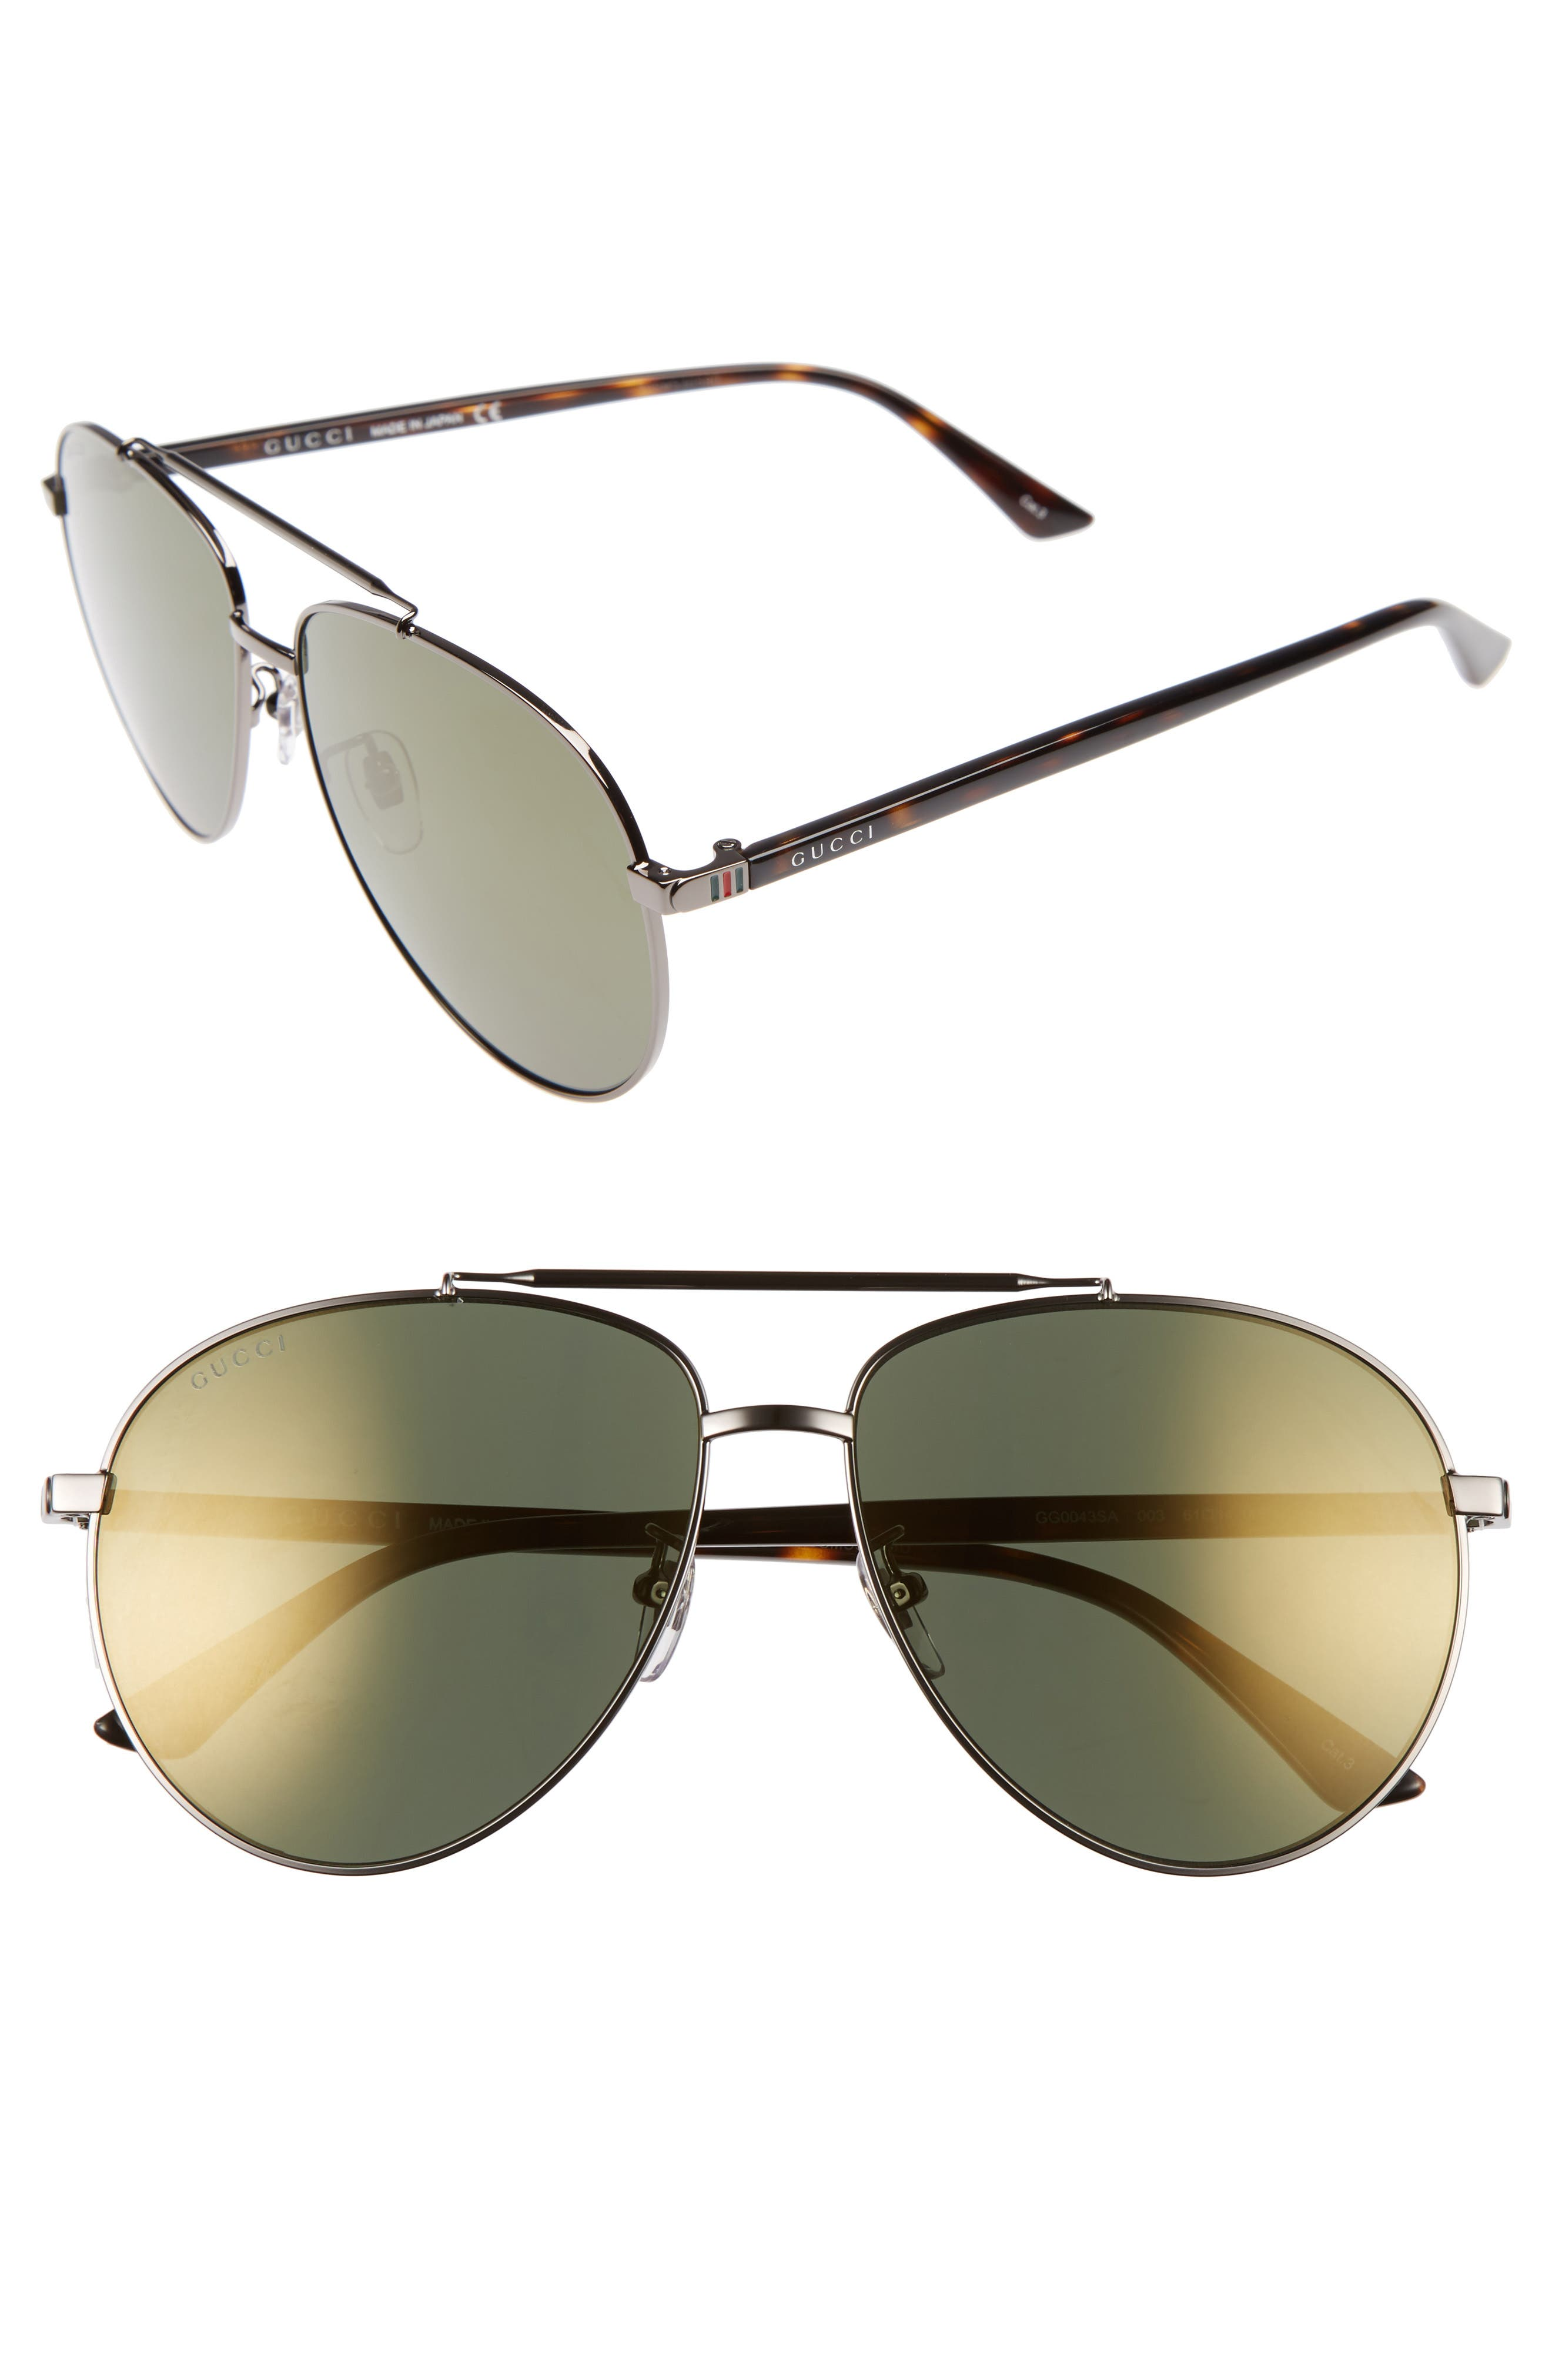 GUCCI, Retro Web 61mm Aviator Sunglasses, Main thumbnail 1, color, RUTHENIUM W.MIRROR GUN LENS